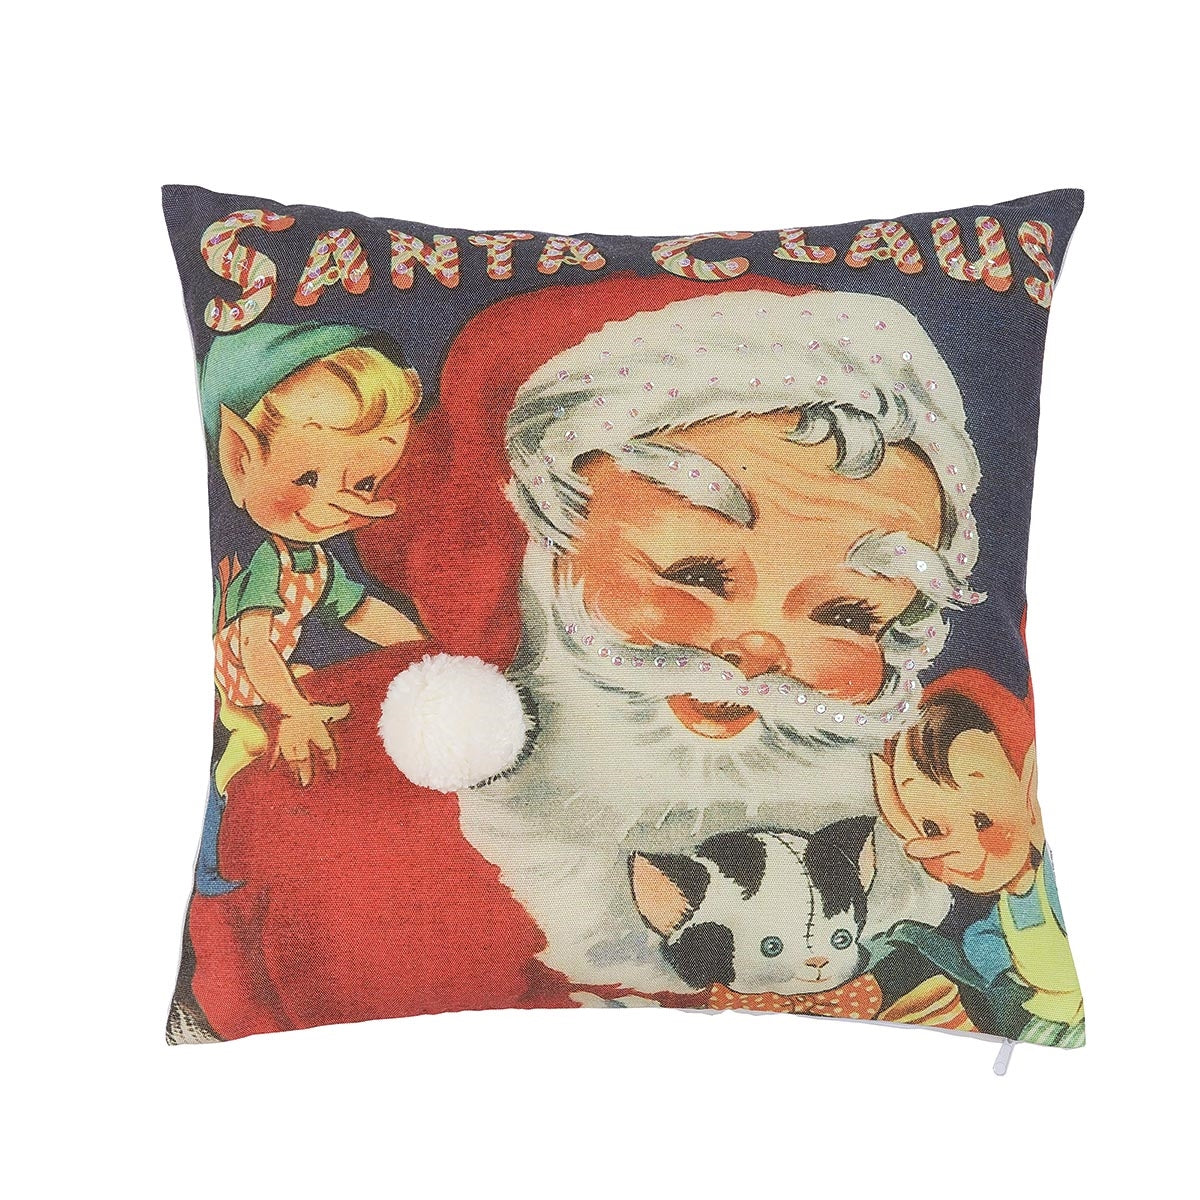 Santa's Workshop Pillow with Elves and Kitty Cat Doll